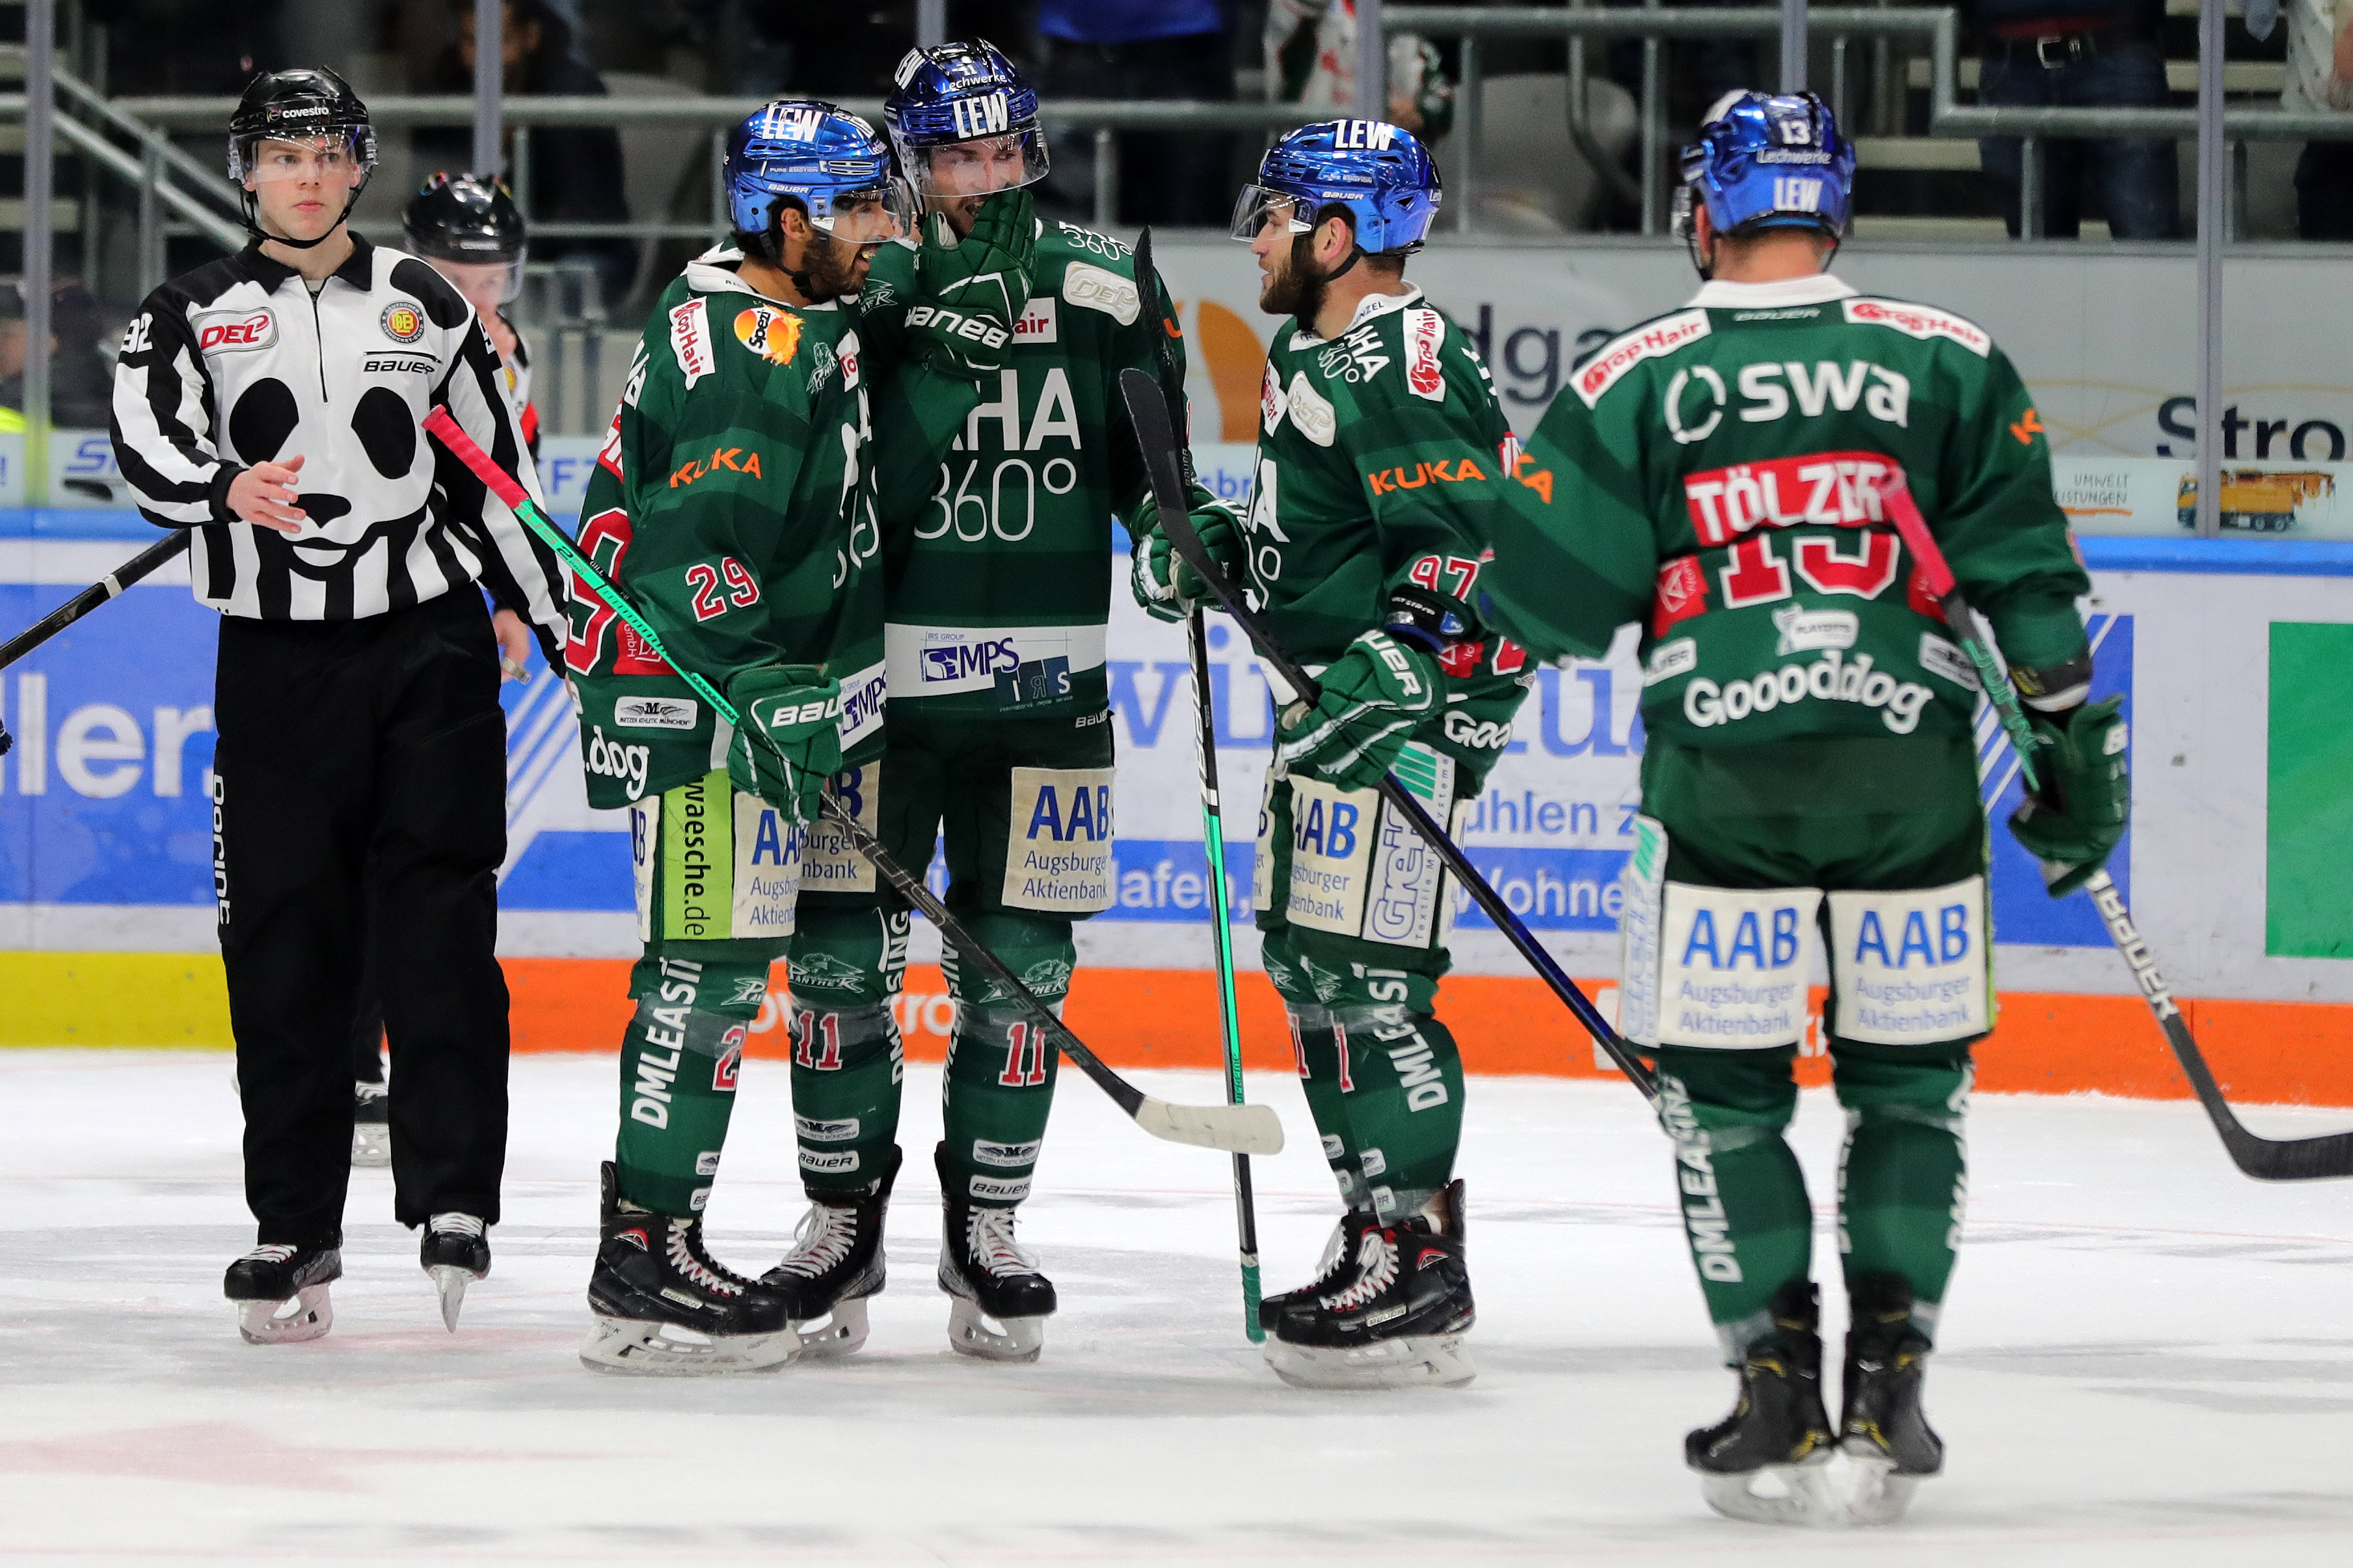 ICE HOCKEY - DEL, Augsburg vs RB Muenchen